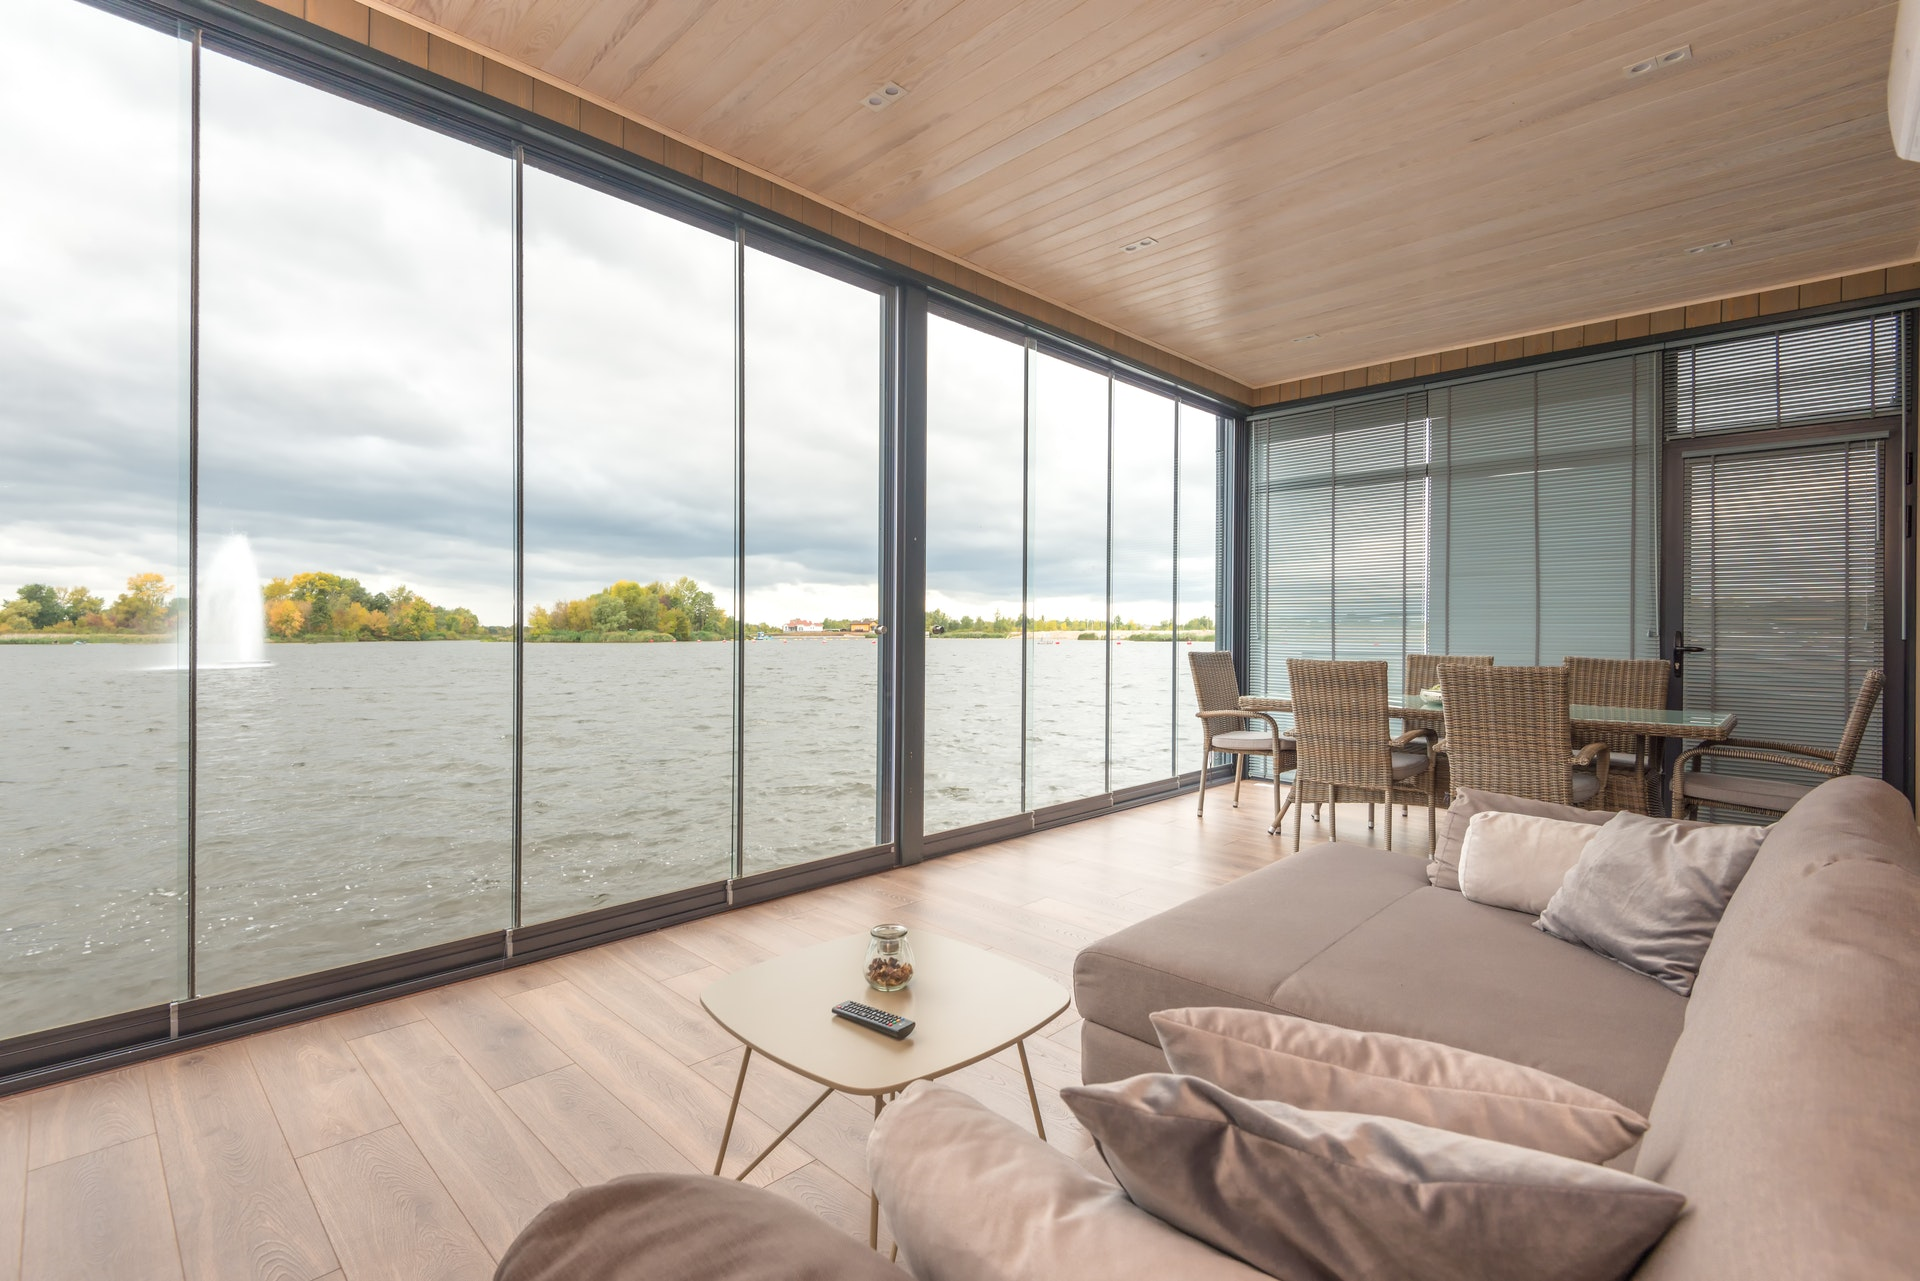 Unexpected Benefits of Glass Walls